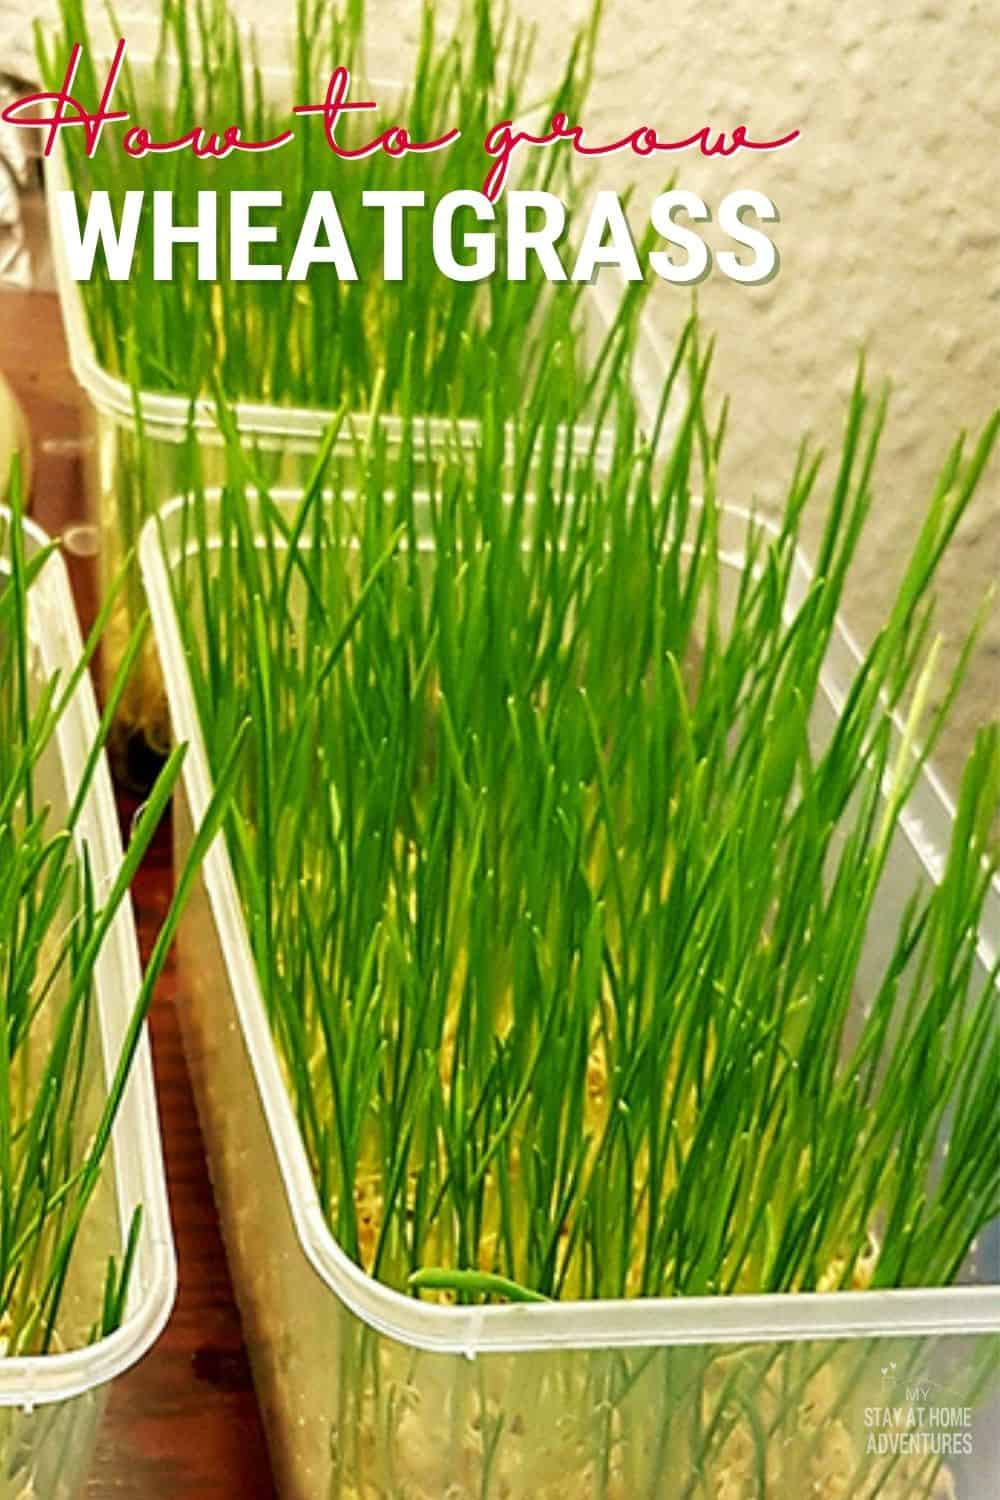 Growing wheatgrass is popular for its juice because of the health benefits from it. We'll talk about How to Grow Wheatgrass in your Home, and a bit more. via @mystayathome